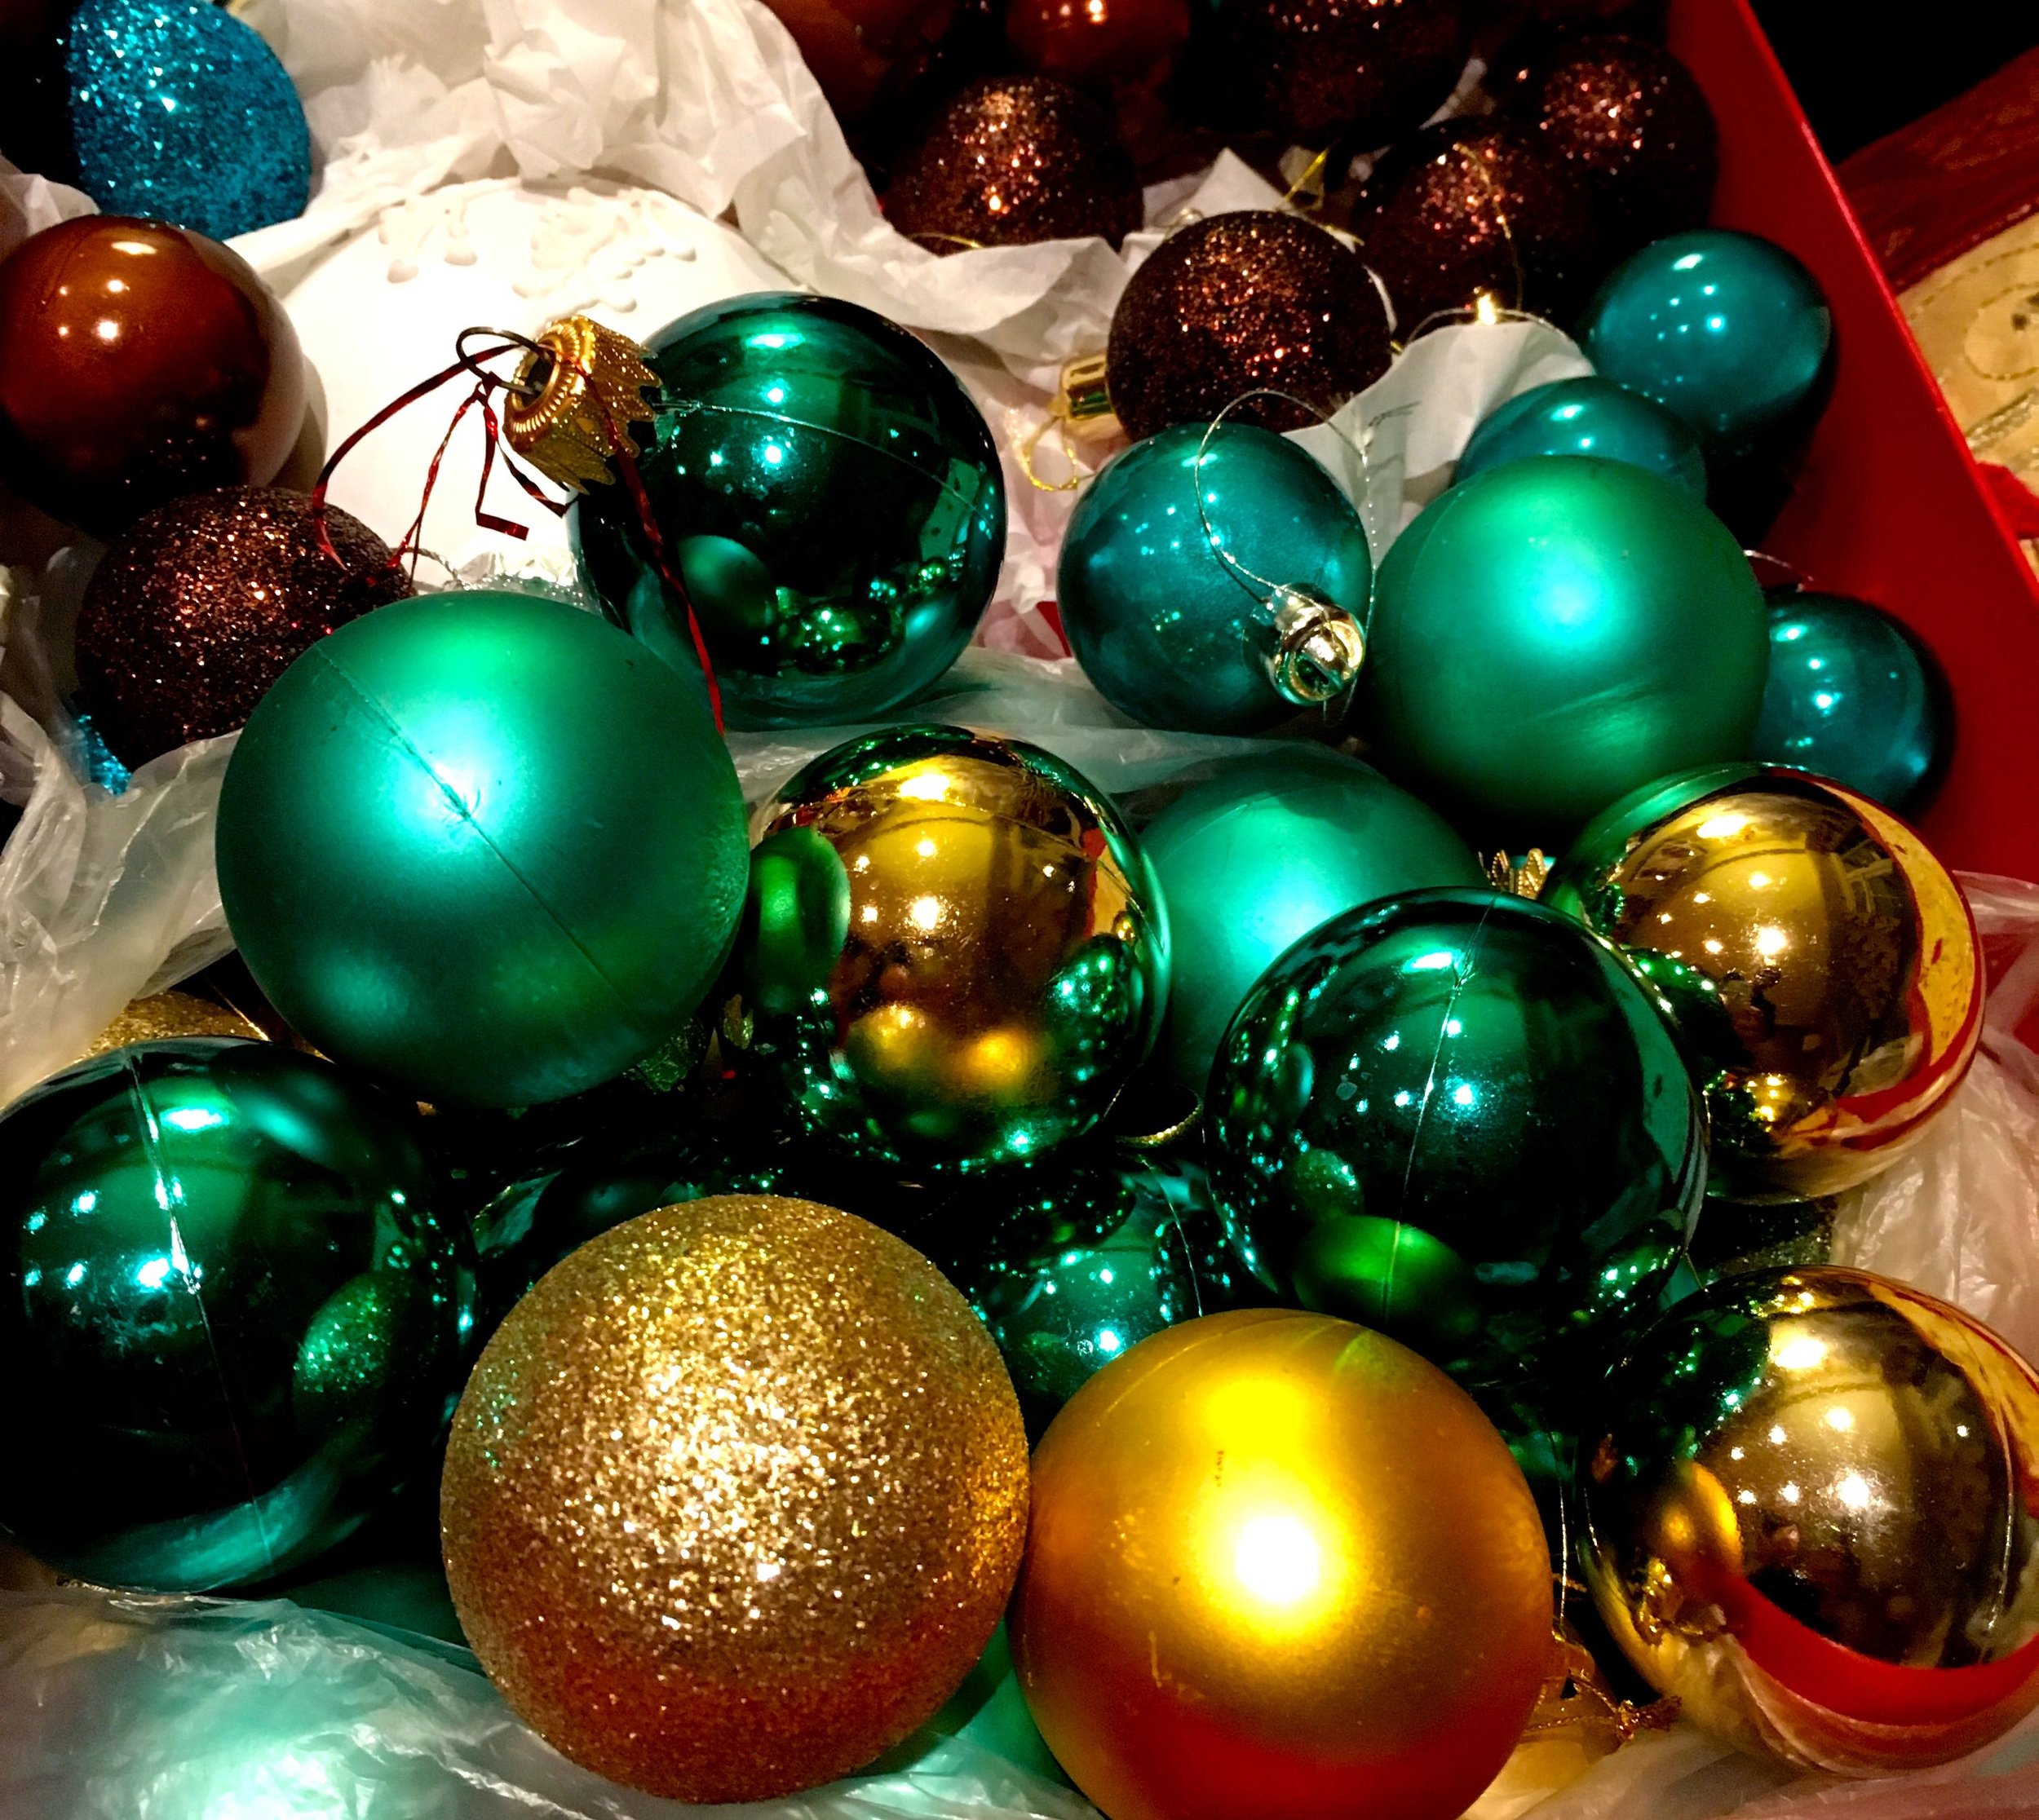 Christmas baubles back in their box